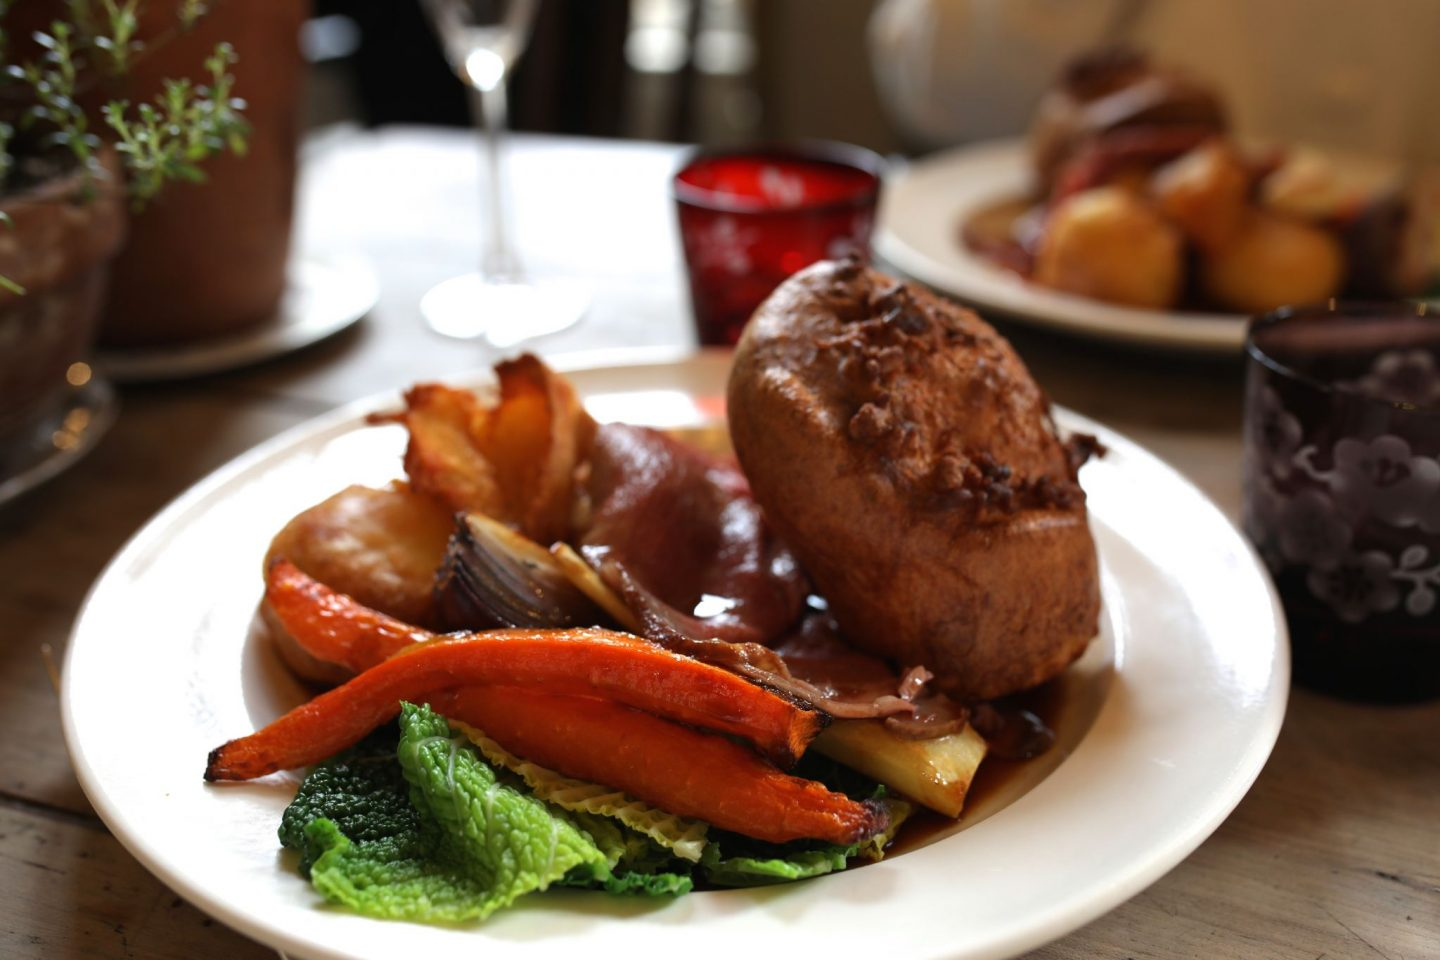 Sunday Lunch at The Pig at Combe, Gittisham, Devon, Katie Heath KALANCHOE,